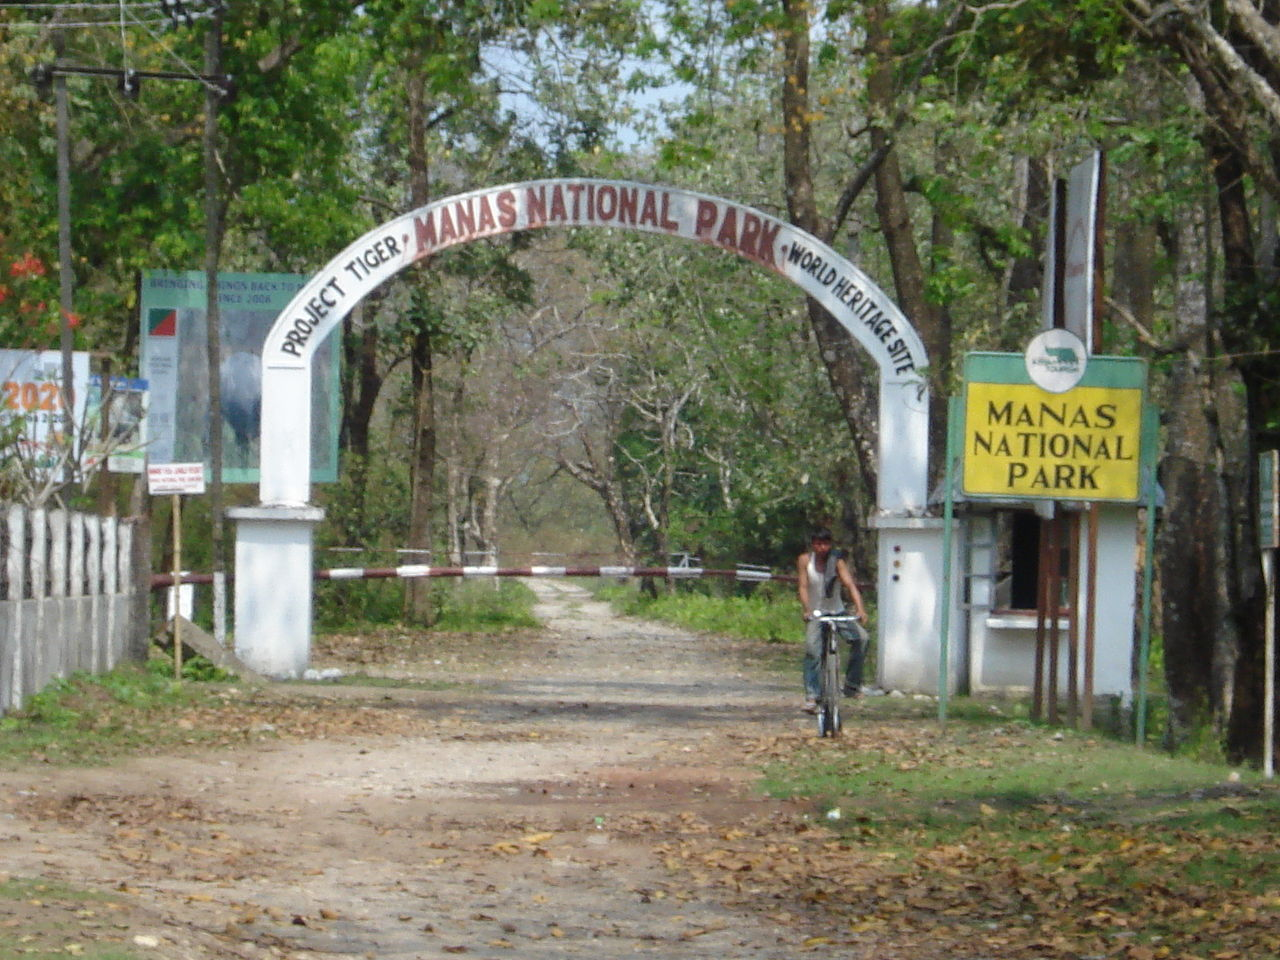 The main entrance to Manas national park. Credit: Sougata Sinha Roy/Wikimedia Commons, CC BY 3.0